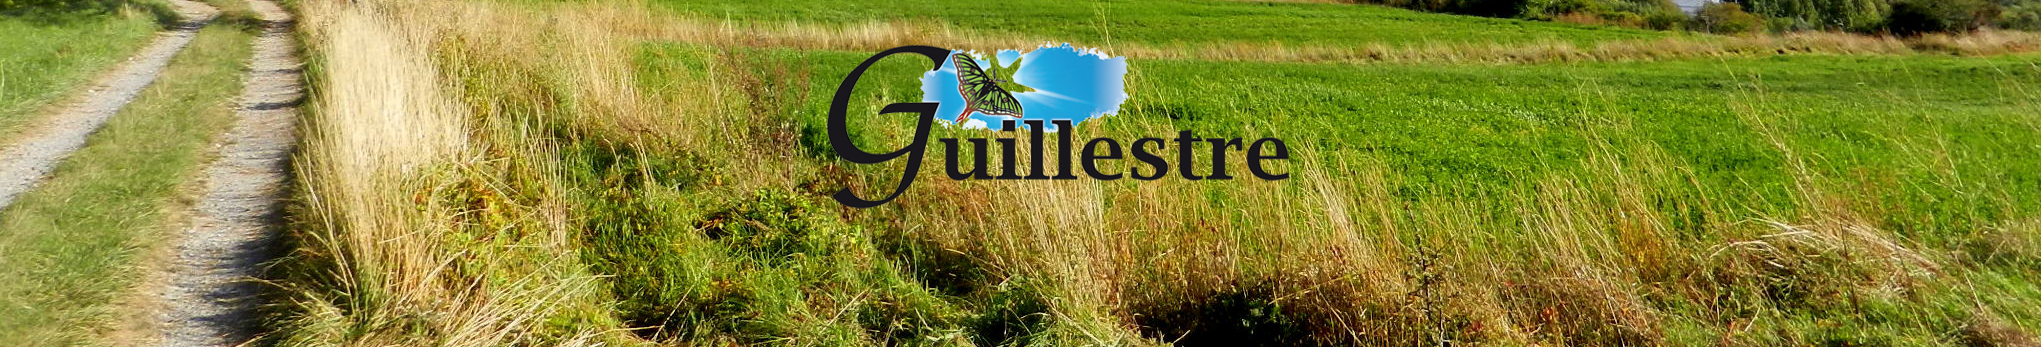 Commune de Guillestre